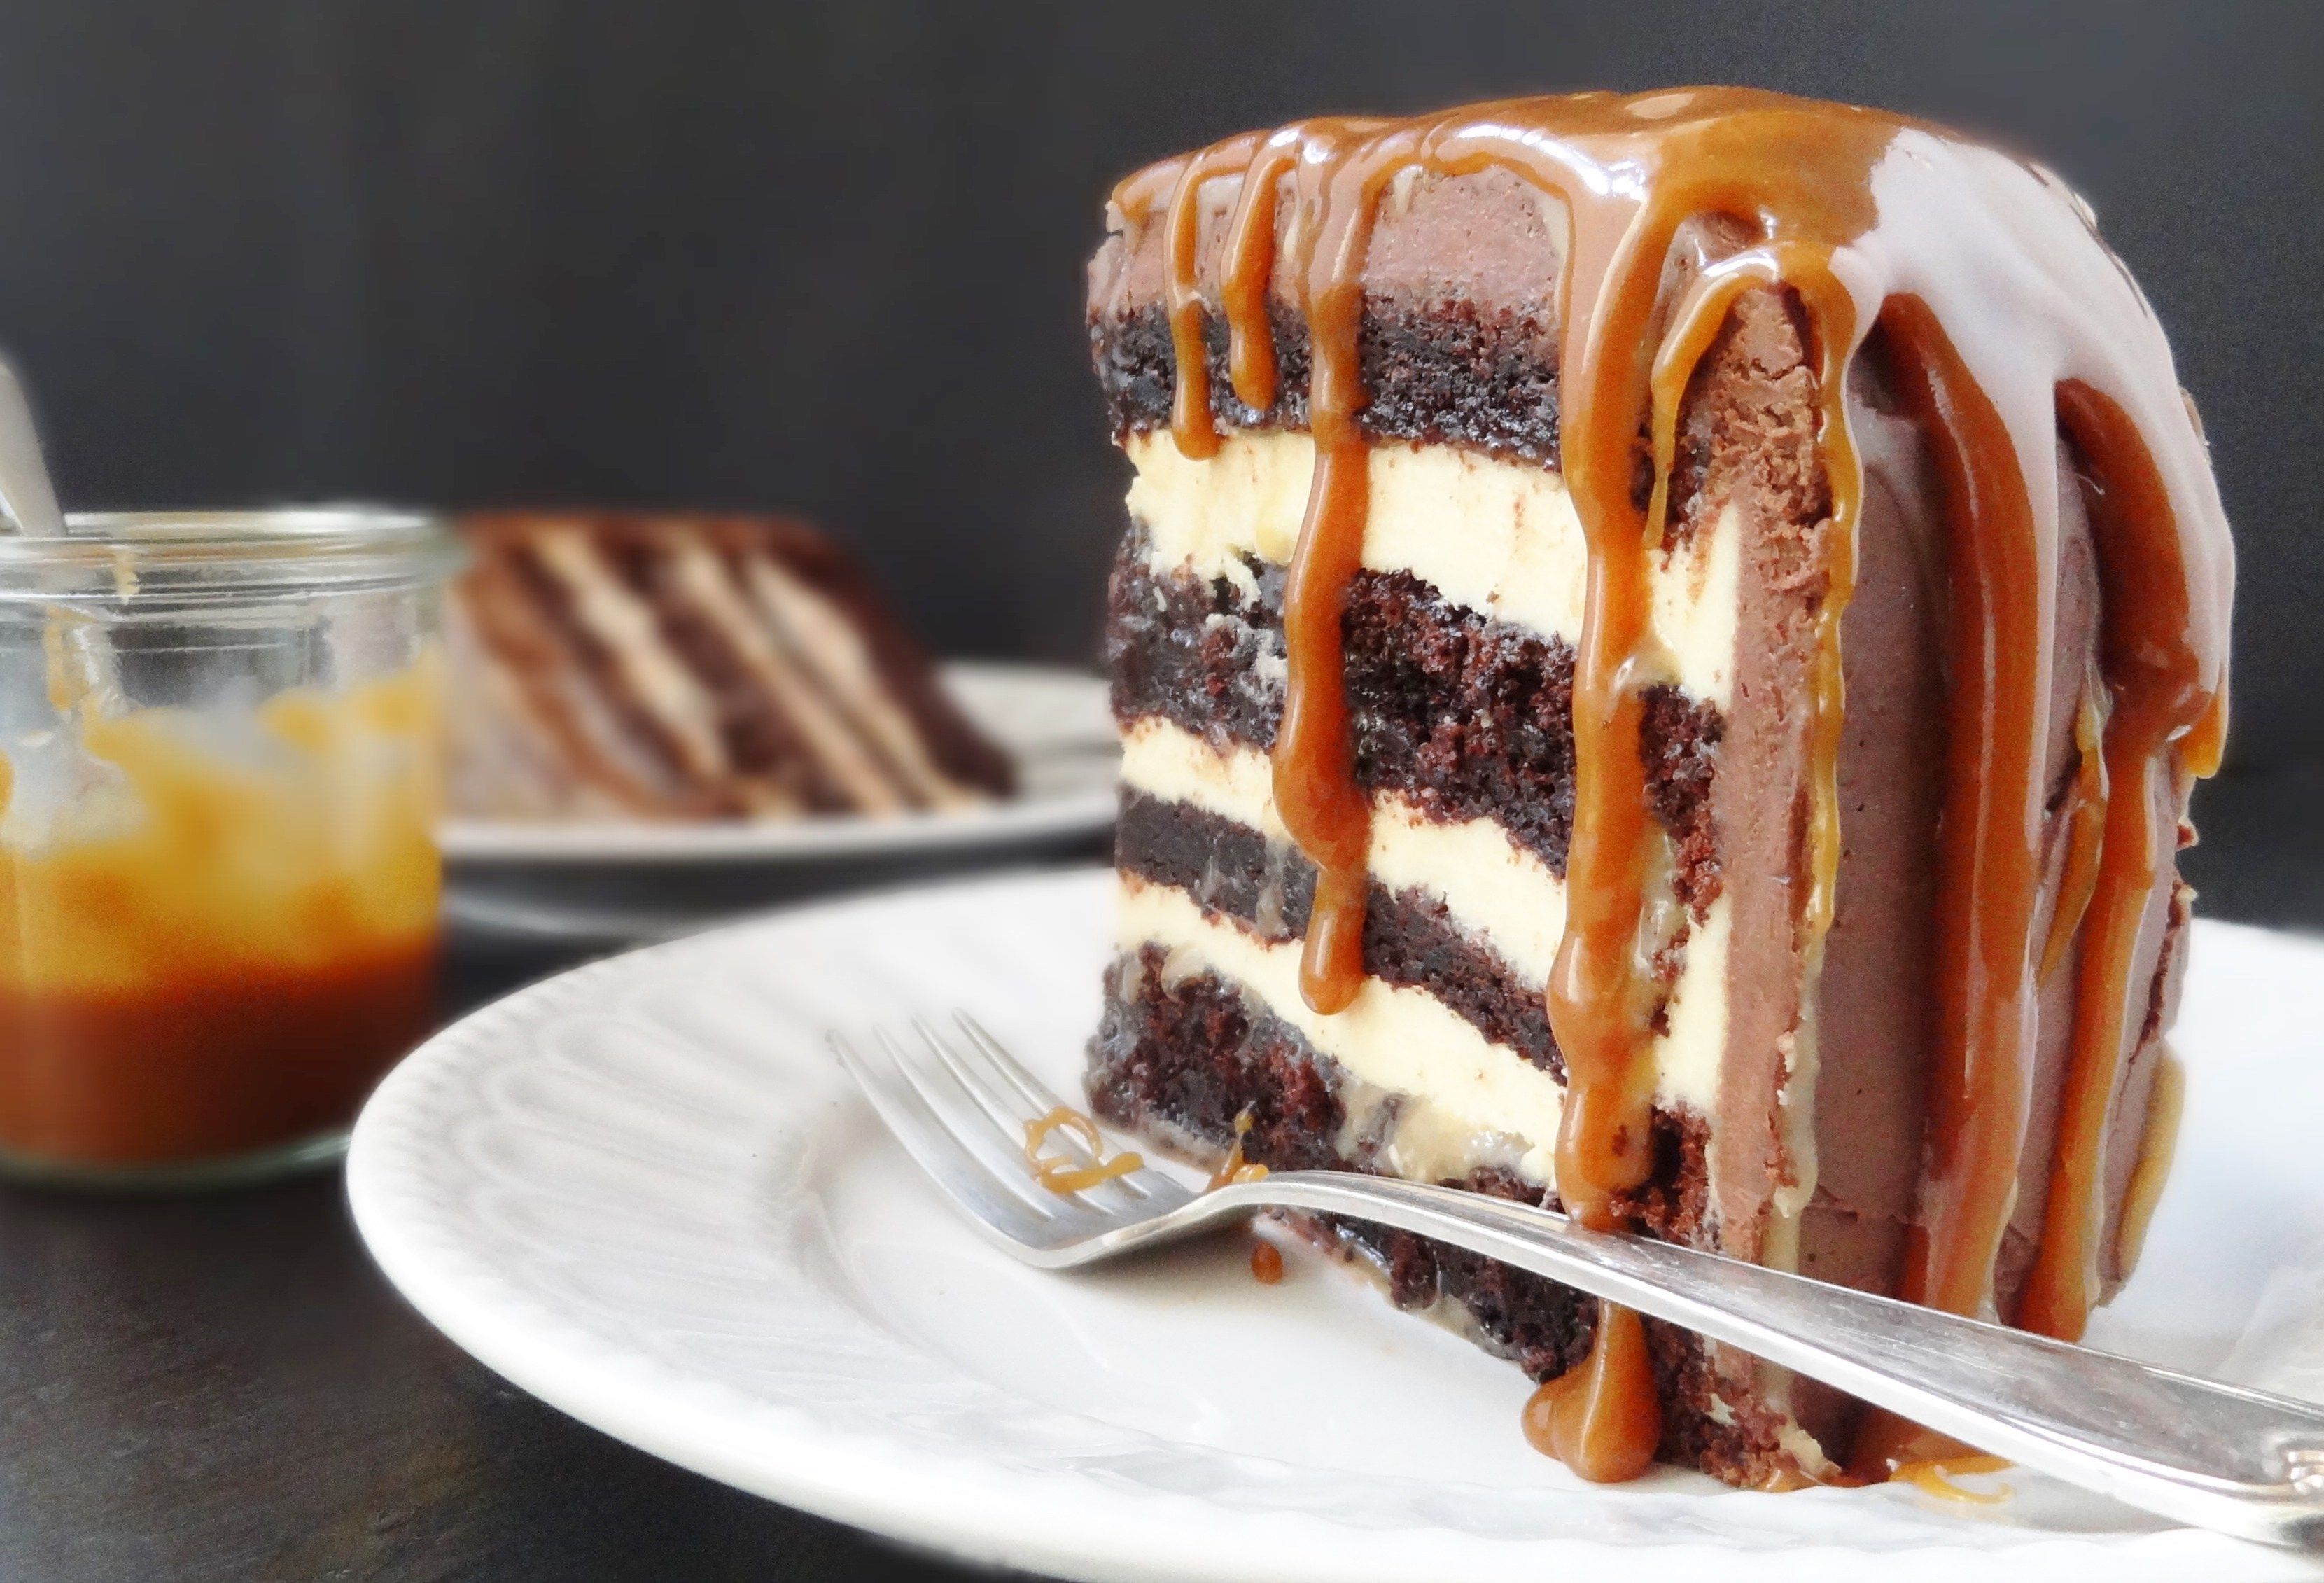 Salted Caramel Chocolate Fudge Cake Best Cake Recipes Chocolate Fudge Cake Cake Recipes